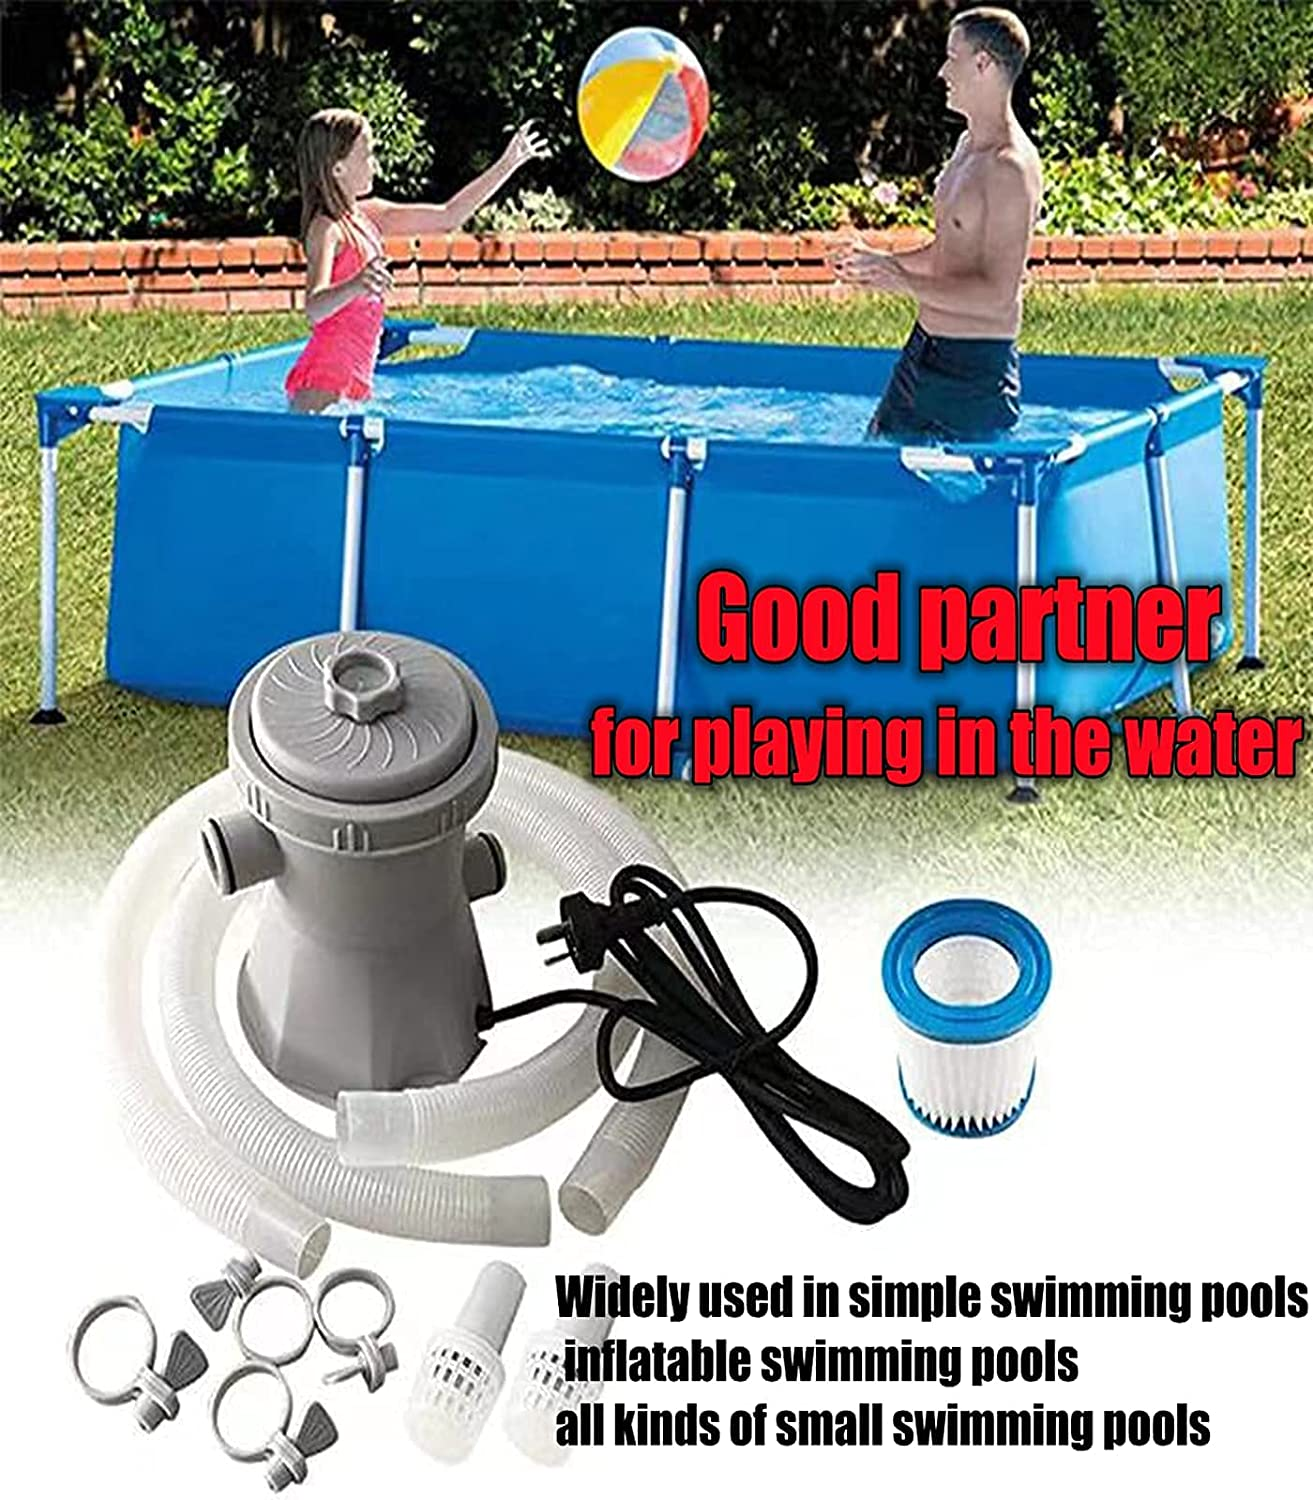 Buy Ueemph 300gph Filter Pump Mute Efficient Low Maintenance Cost Used To Above Ground Pools Small Swimming Pool Filter Pump Electric Filter Pump 110 120v With Gfci Online In Indonesia B091mht1l4